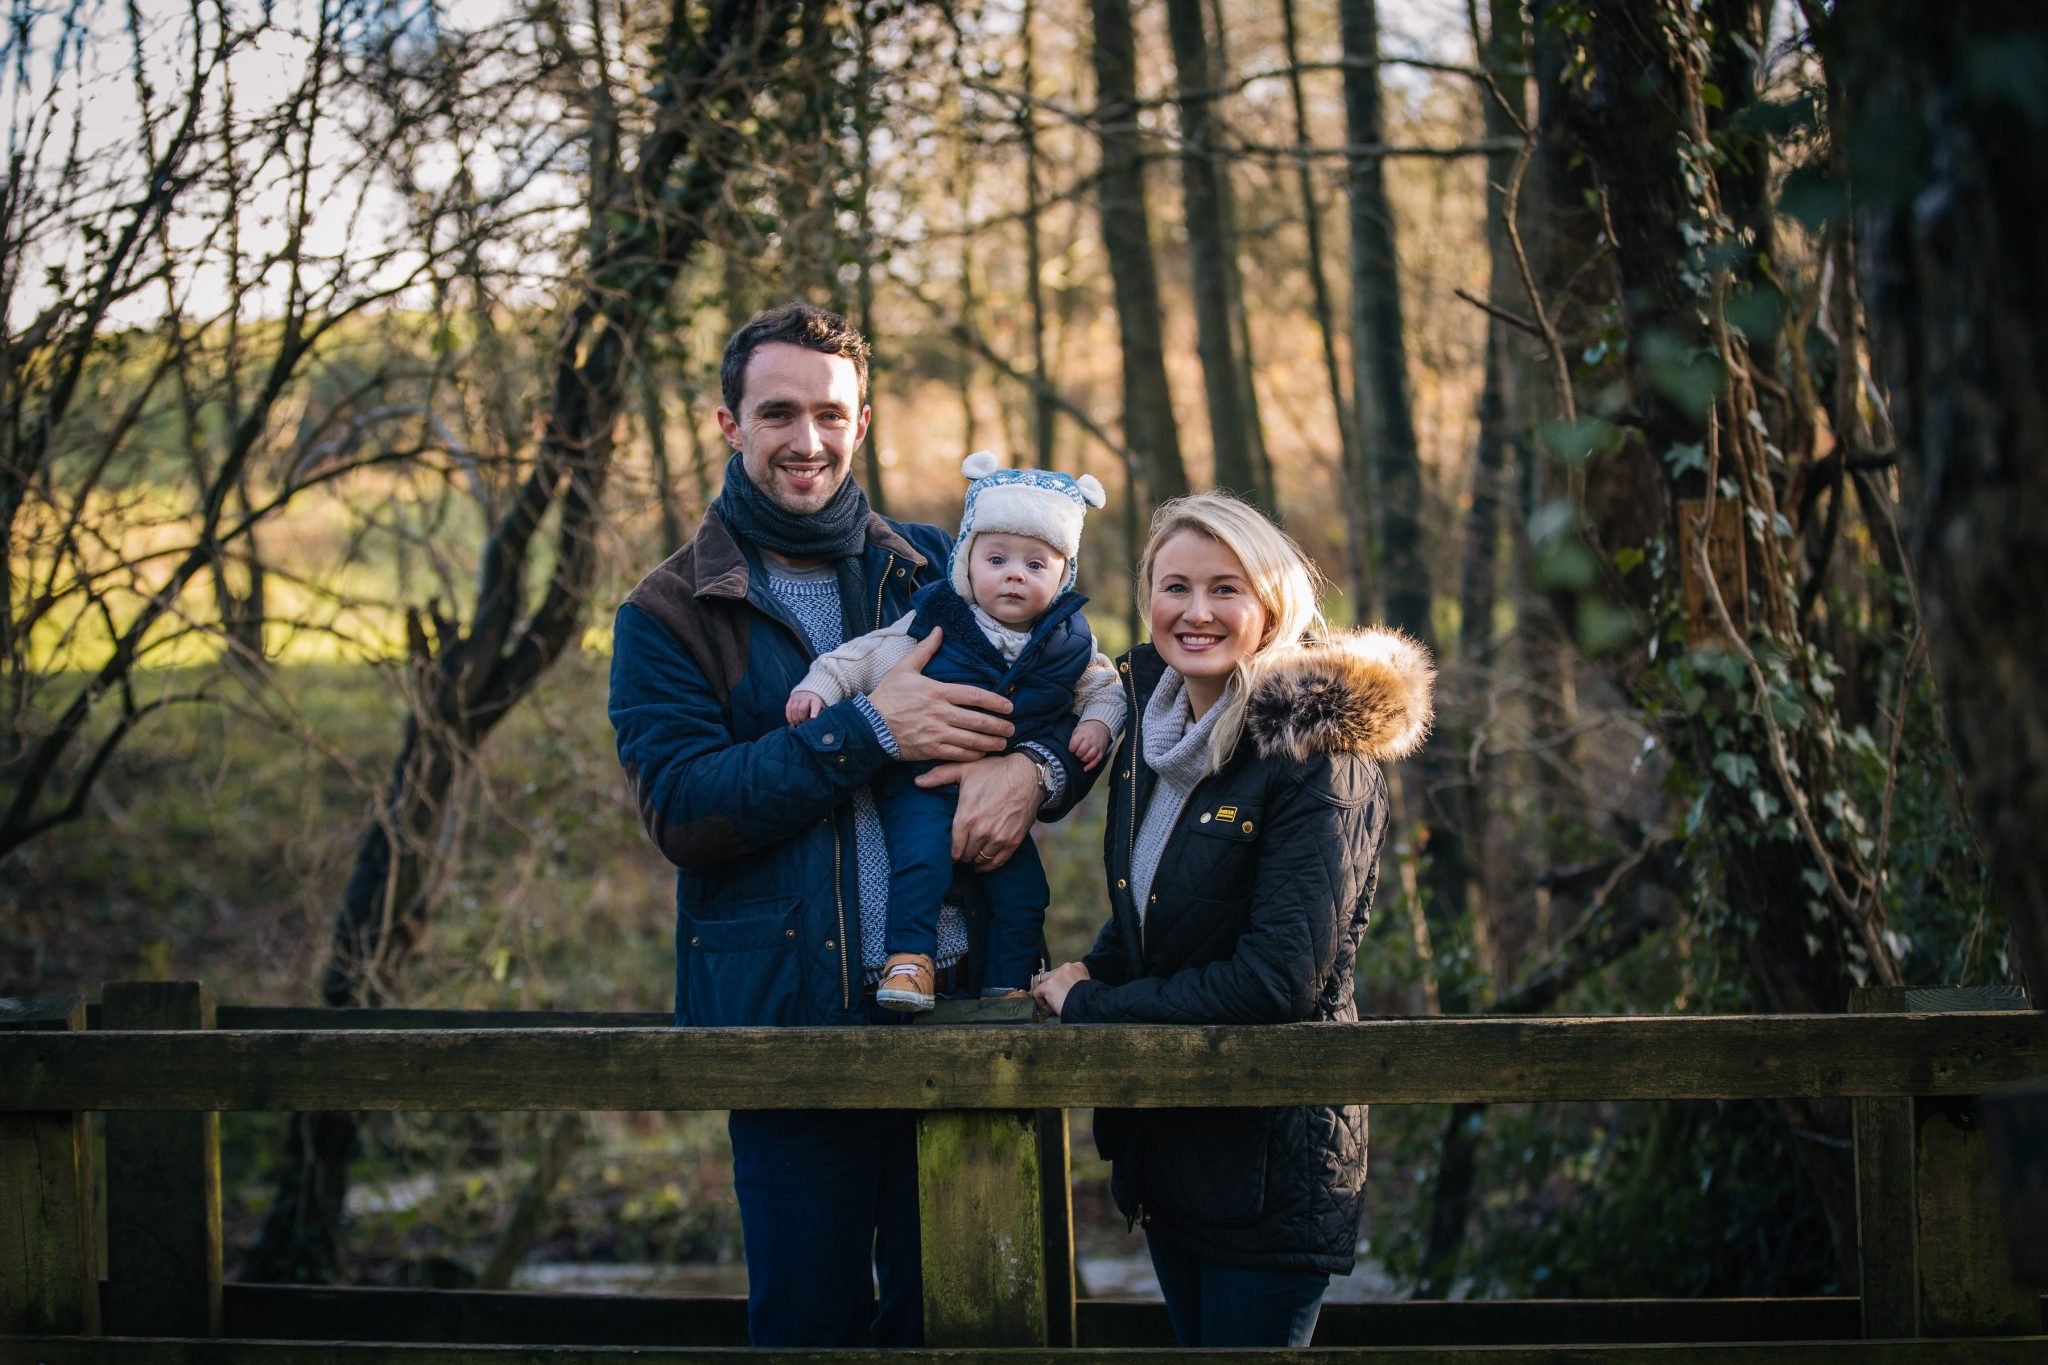 Outdoor family portraits Cheshire - Joanna Eardley Photography